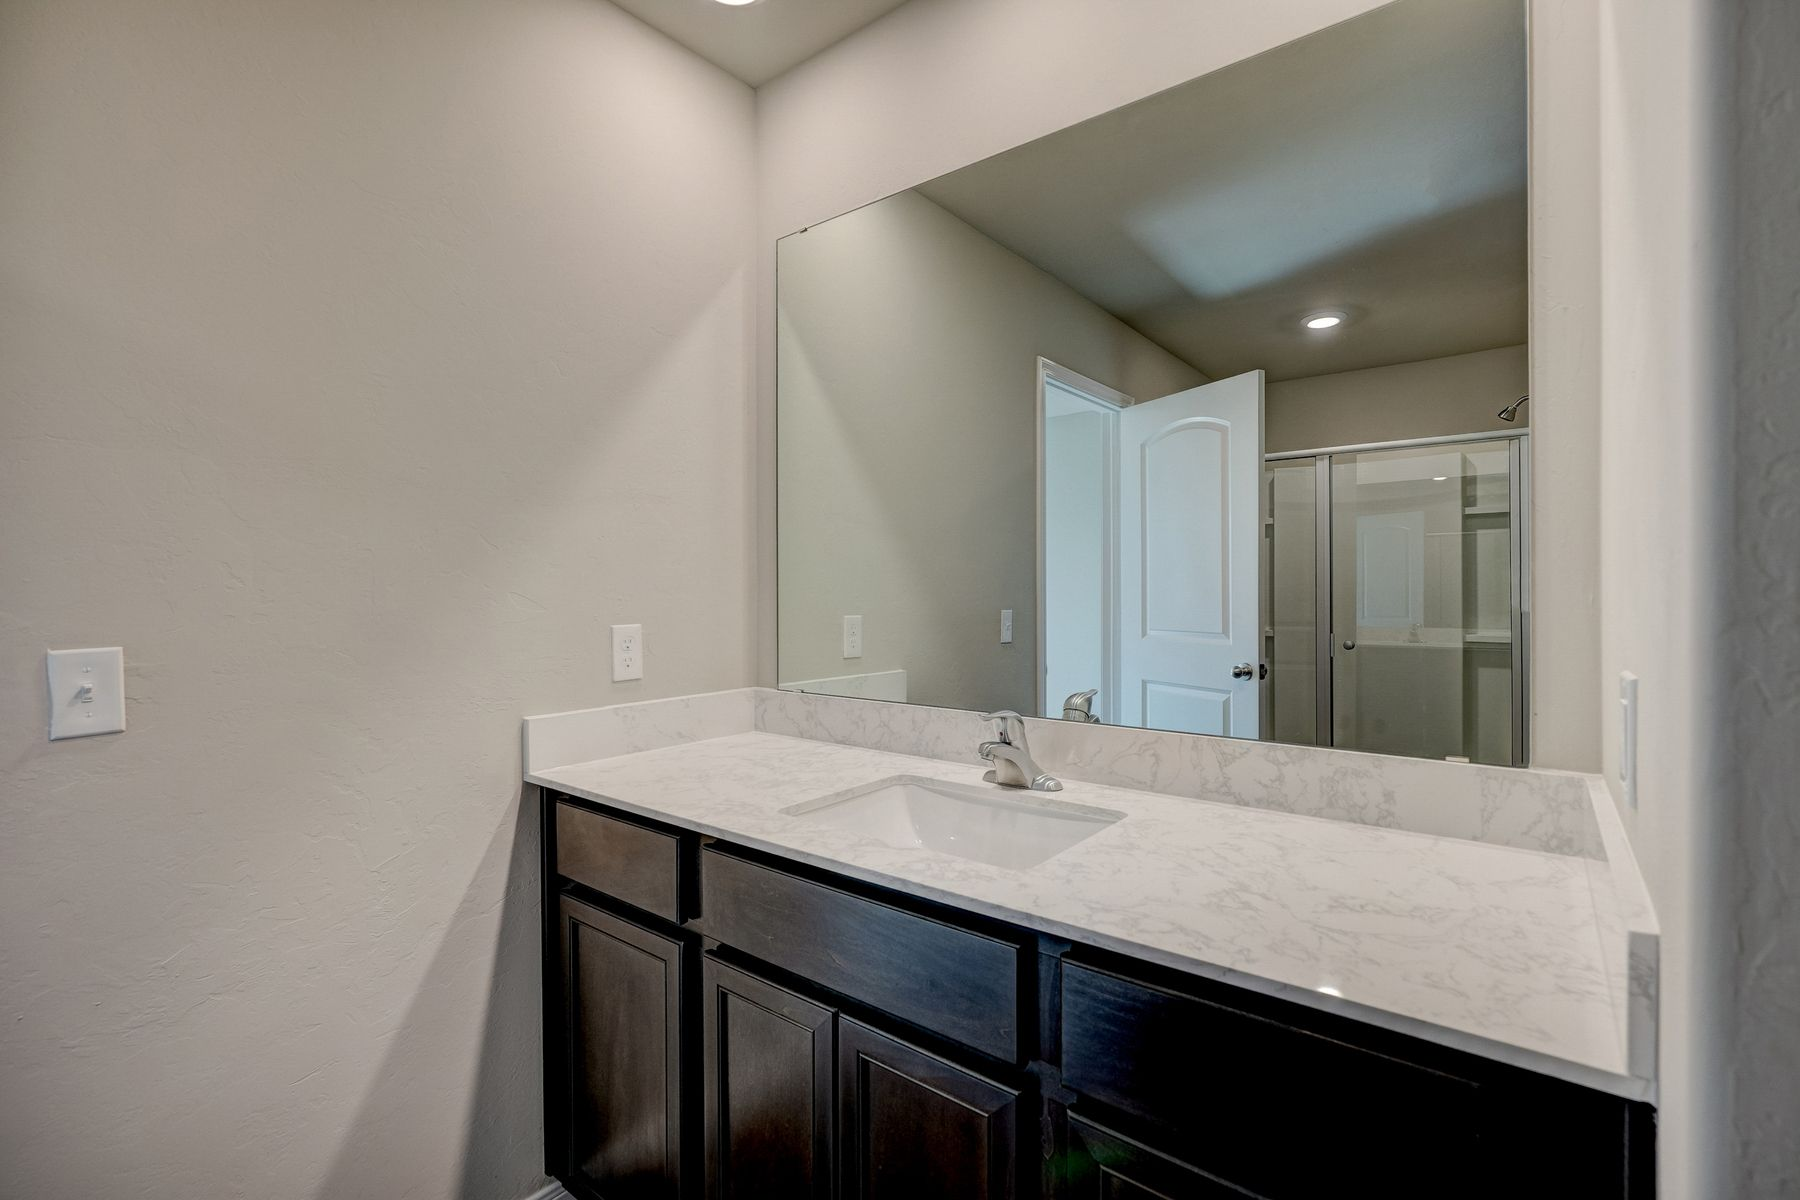 Bathroom featured in the Blanco By LGI Homes in Oklahoma City, OK